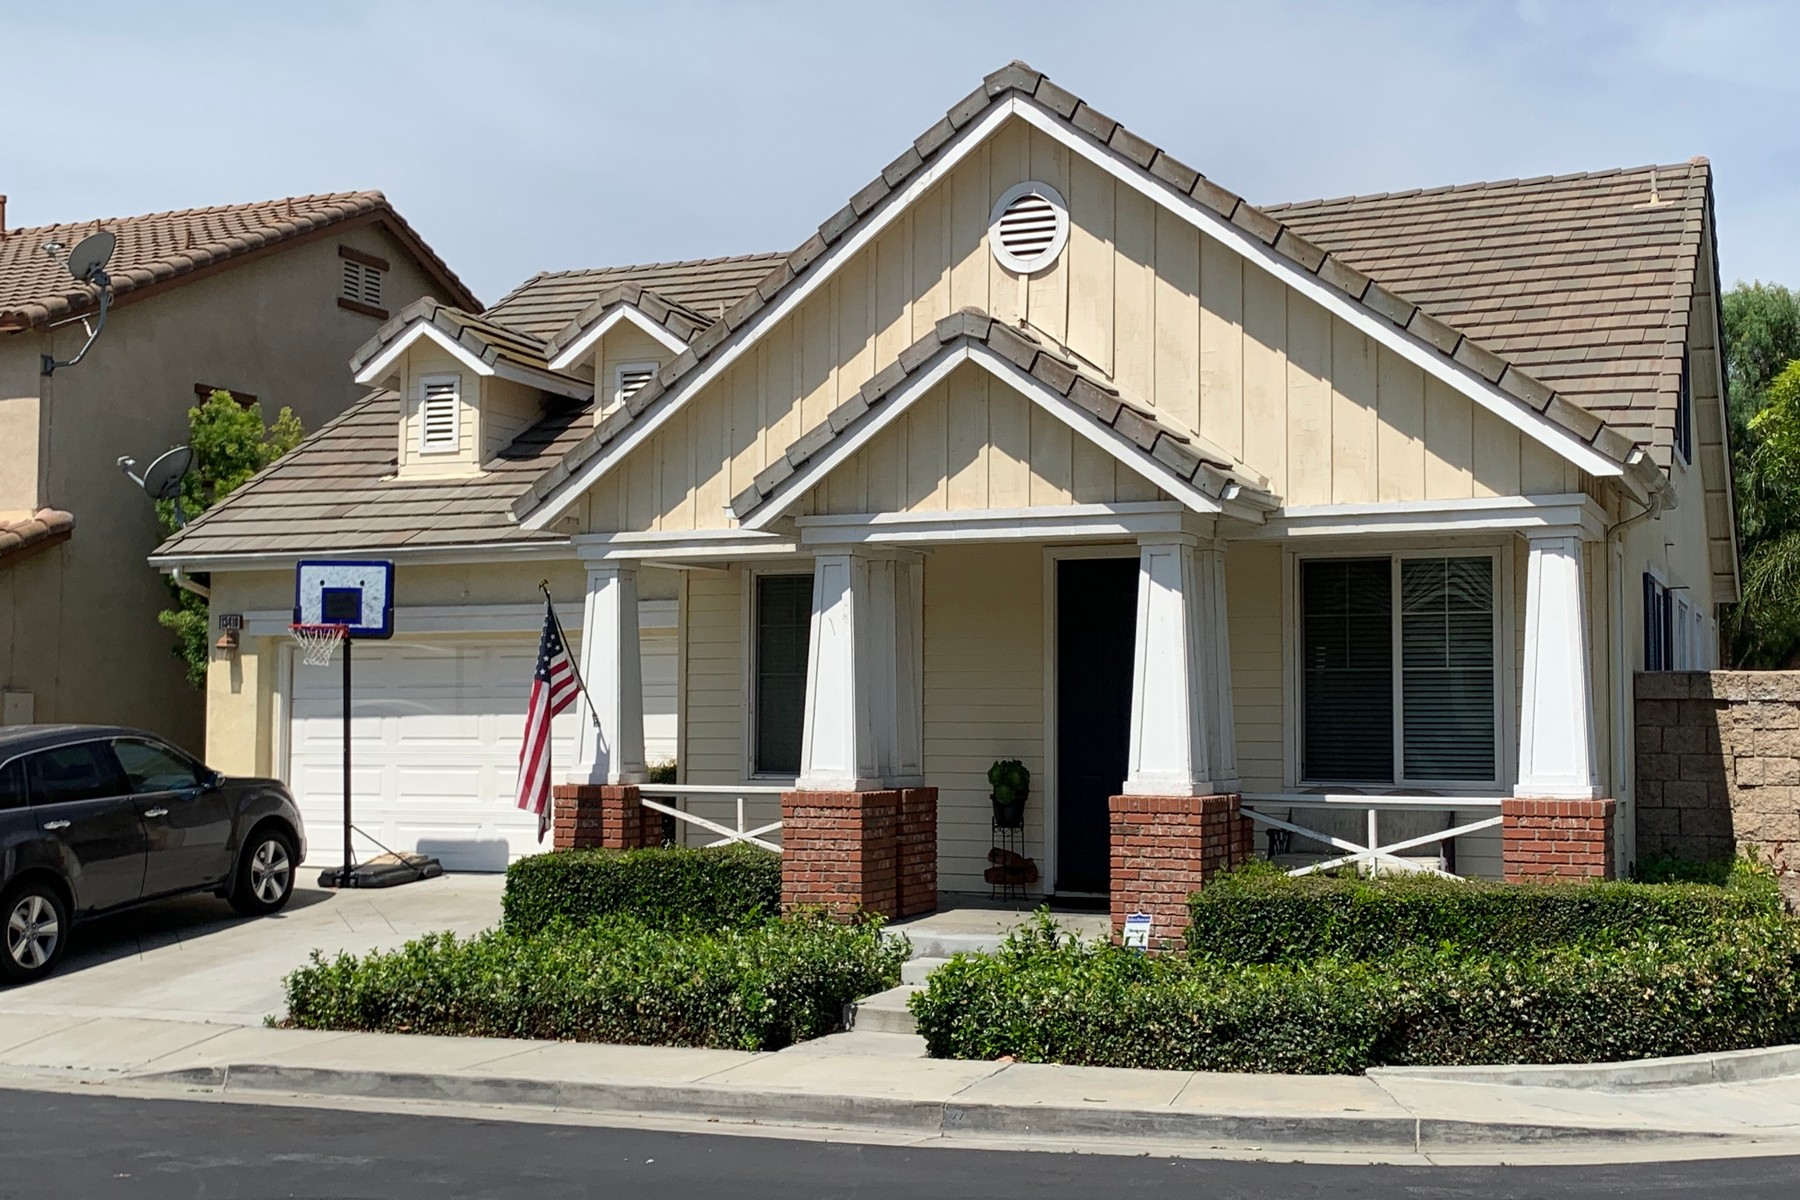 Residenza monofamiliare in vendita in 13410 Goldmedal Ave, Chino, California ,91710